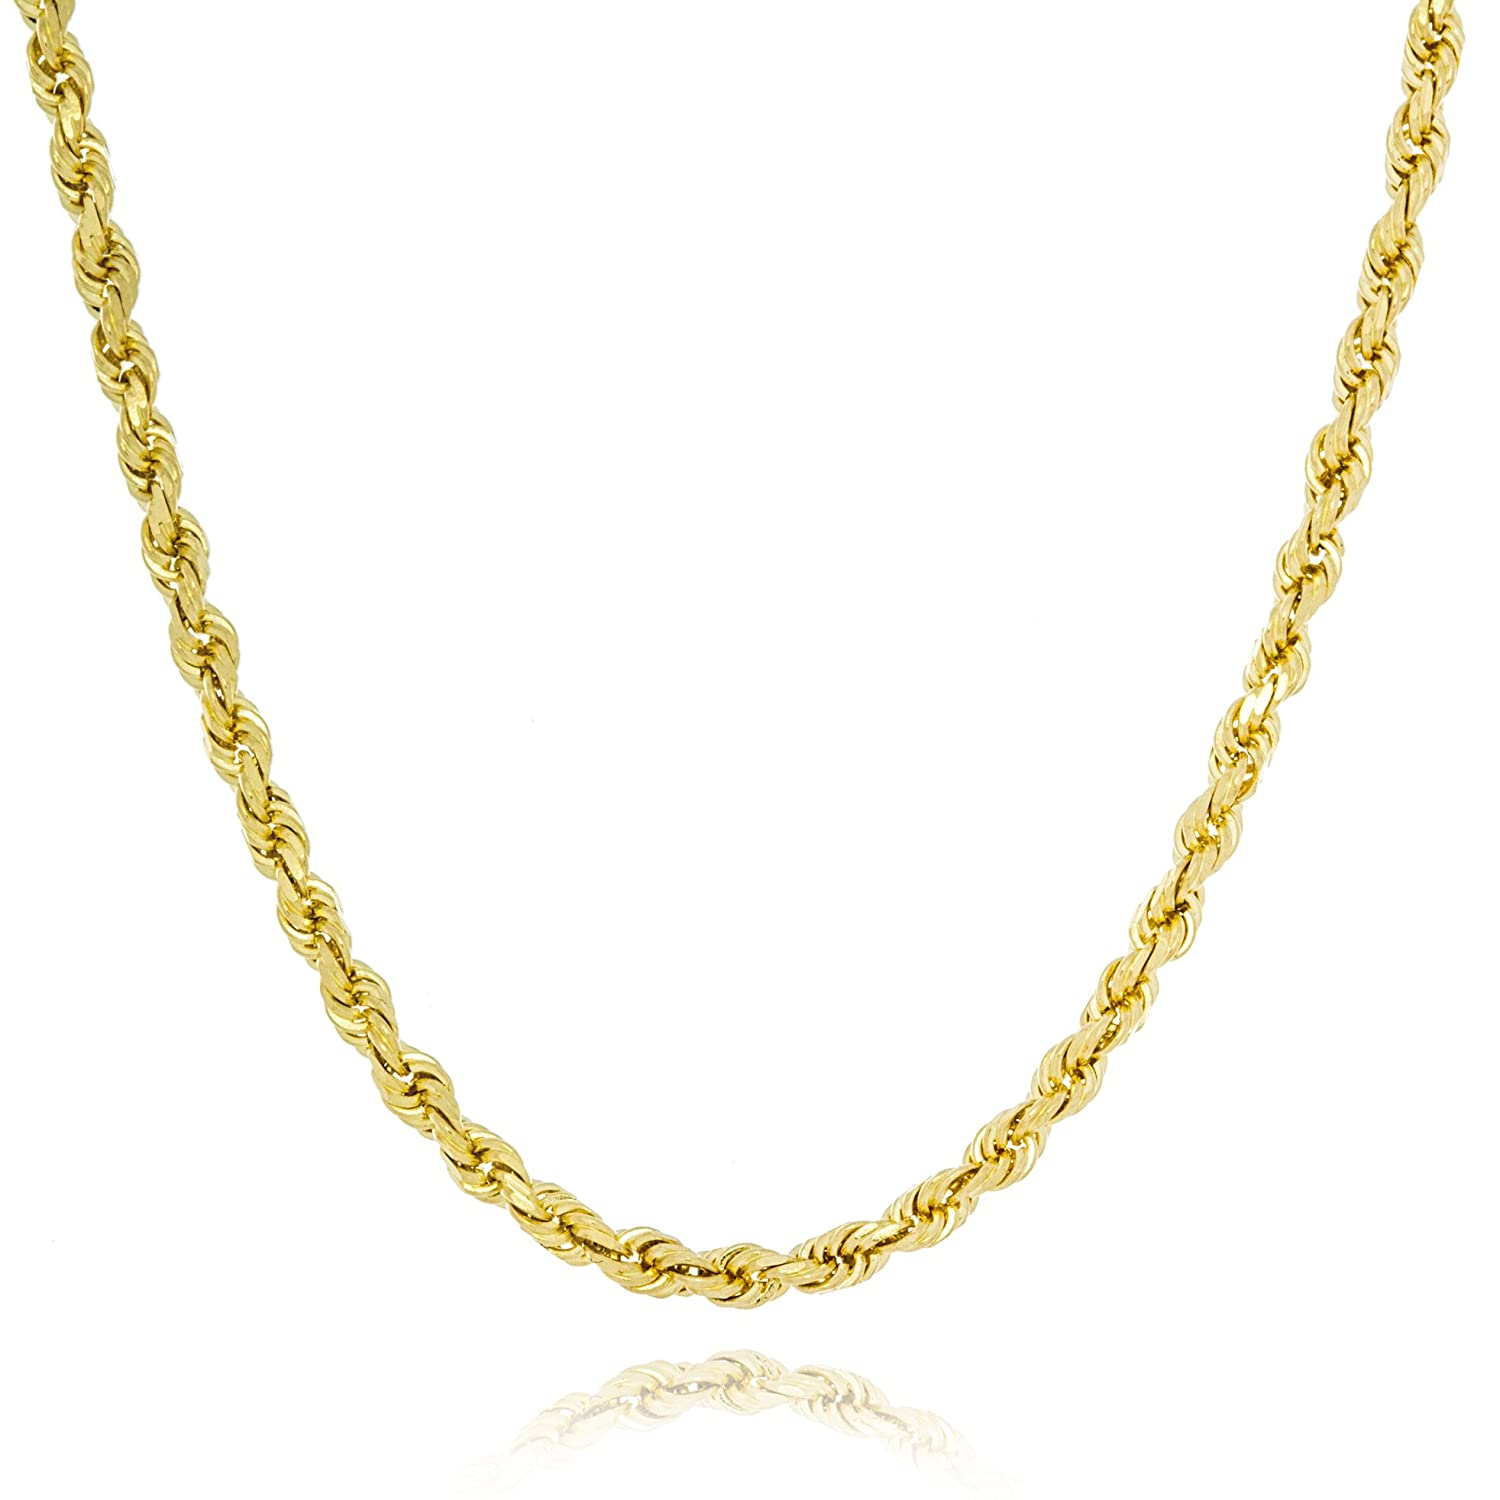 8f1ac3b7da2 Amazon.com: Solid Gold Heavy French Rope Chain Necklace Made in Italy of  14K Yellow Gold 2mm Wide by 16